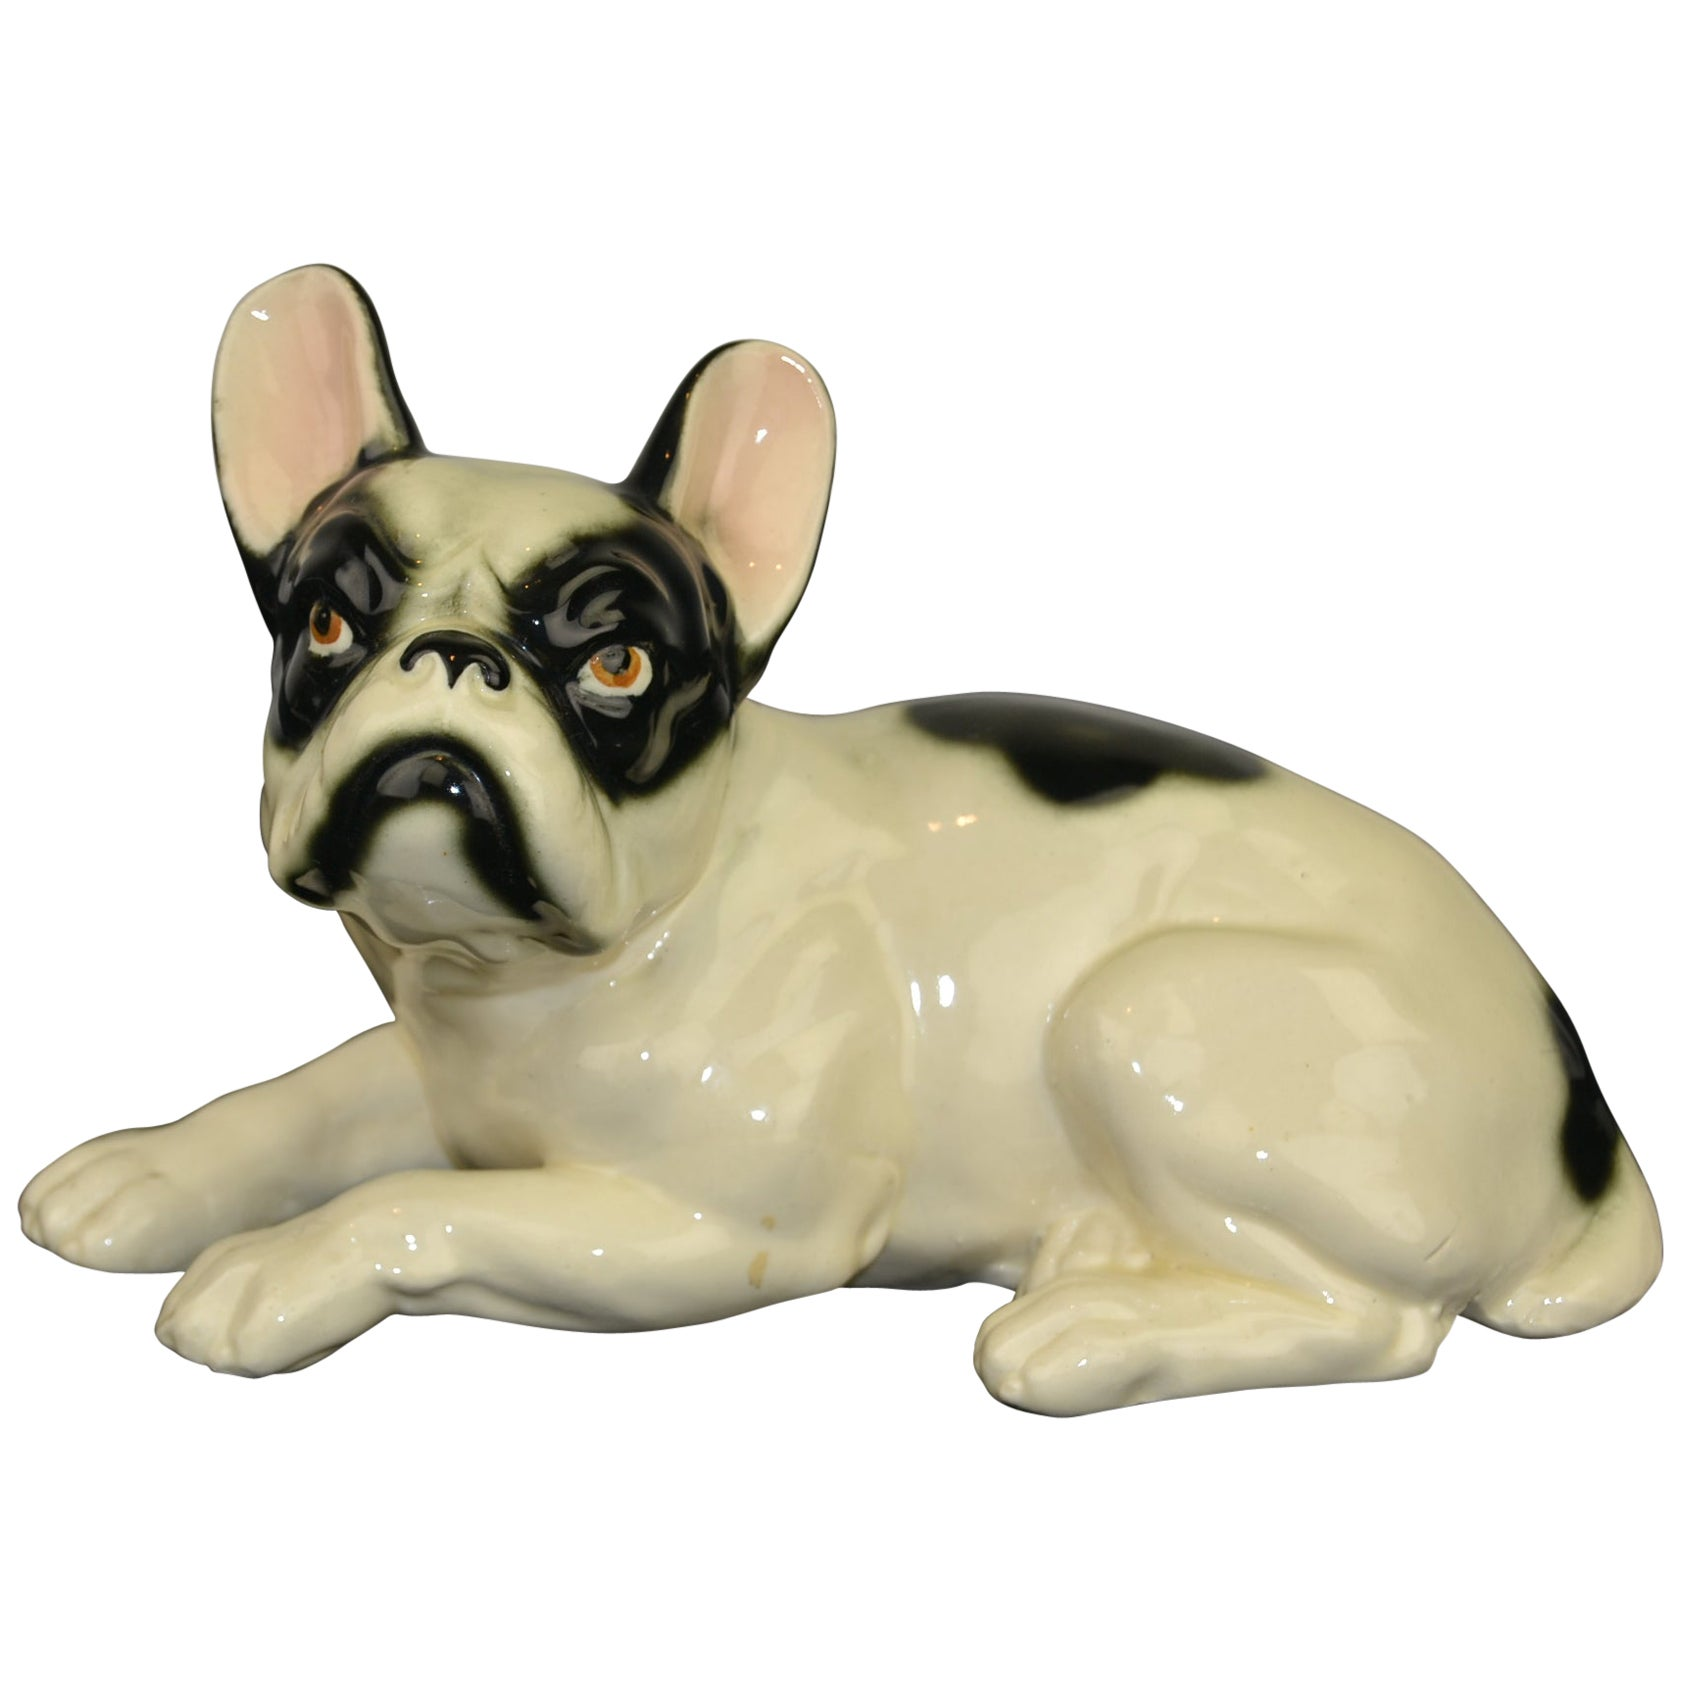 Art Deco Porcelain French Bulldog, Germany, 1930s